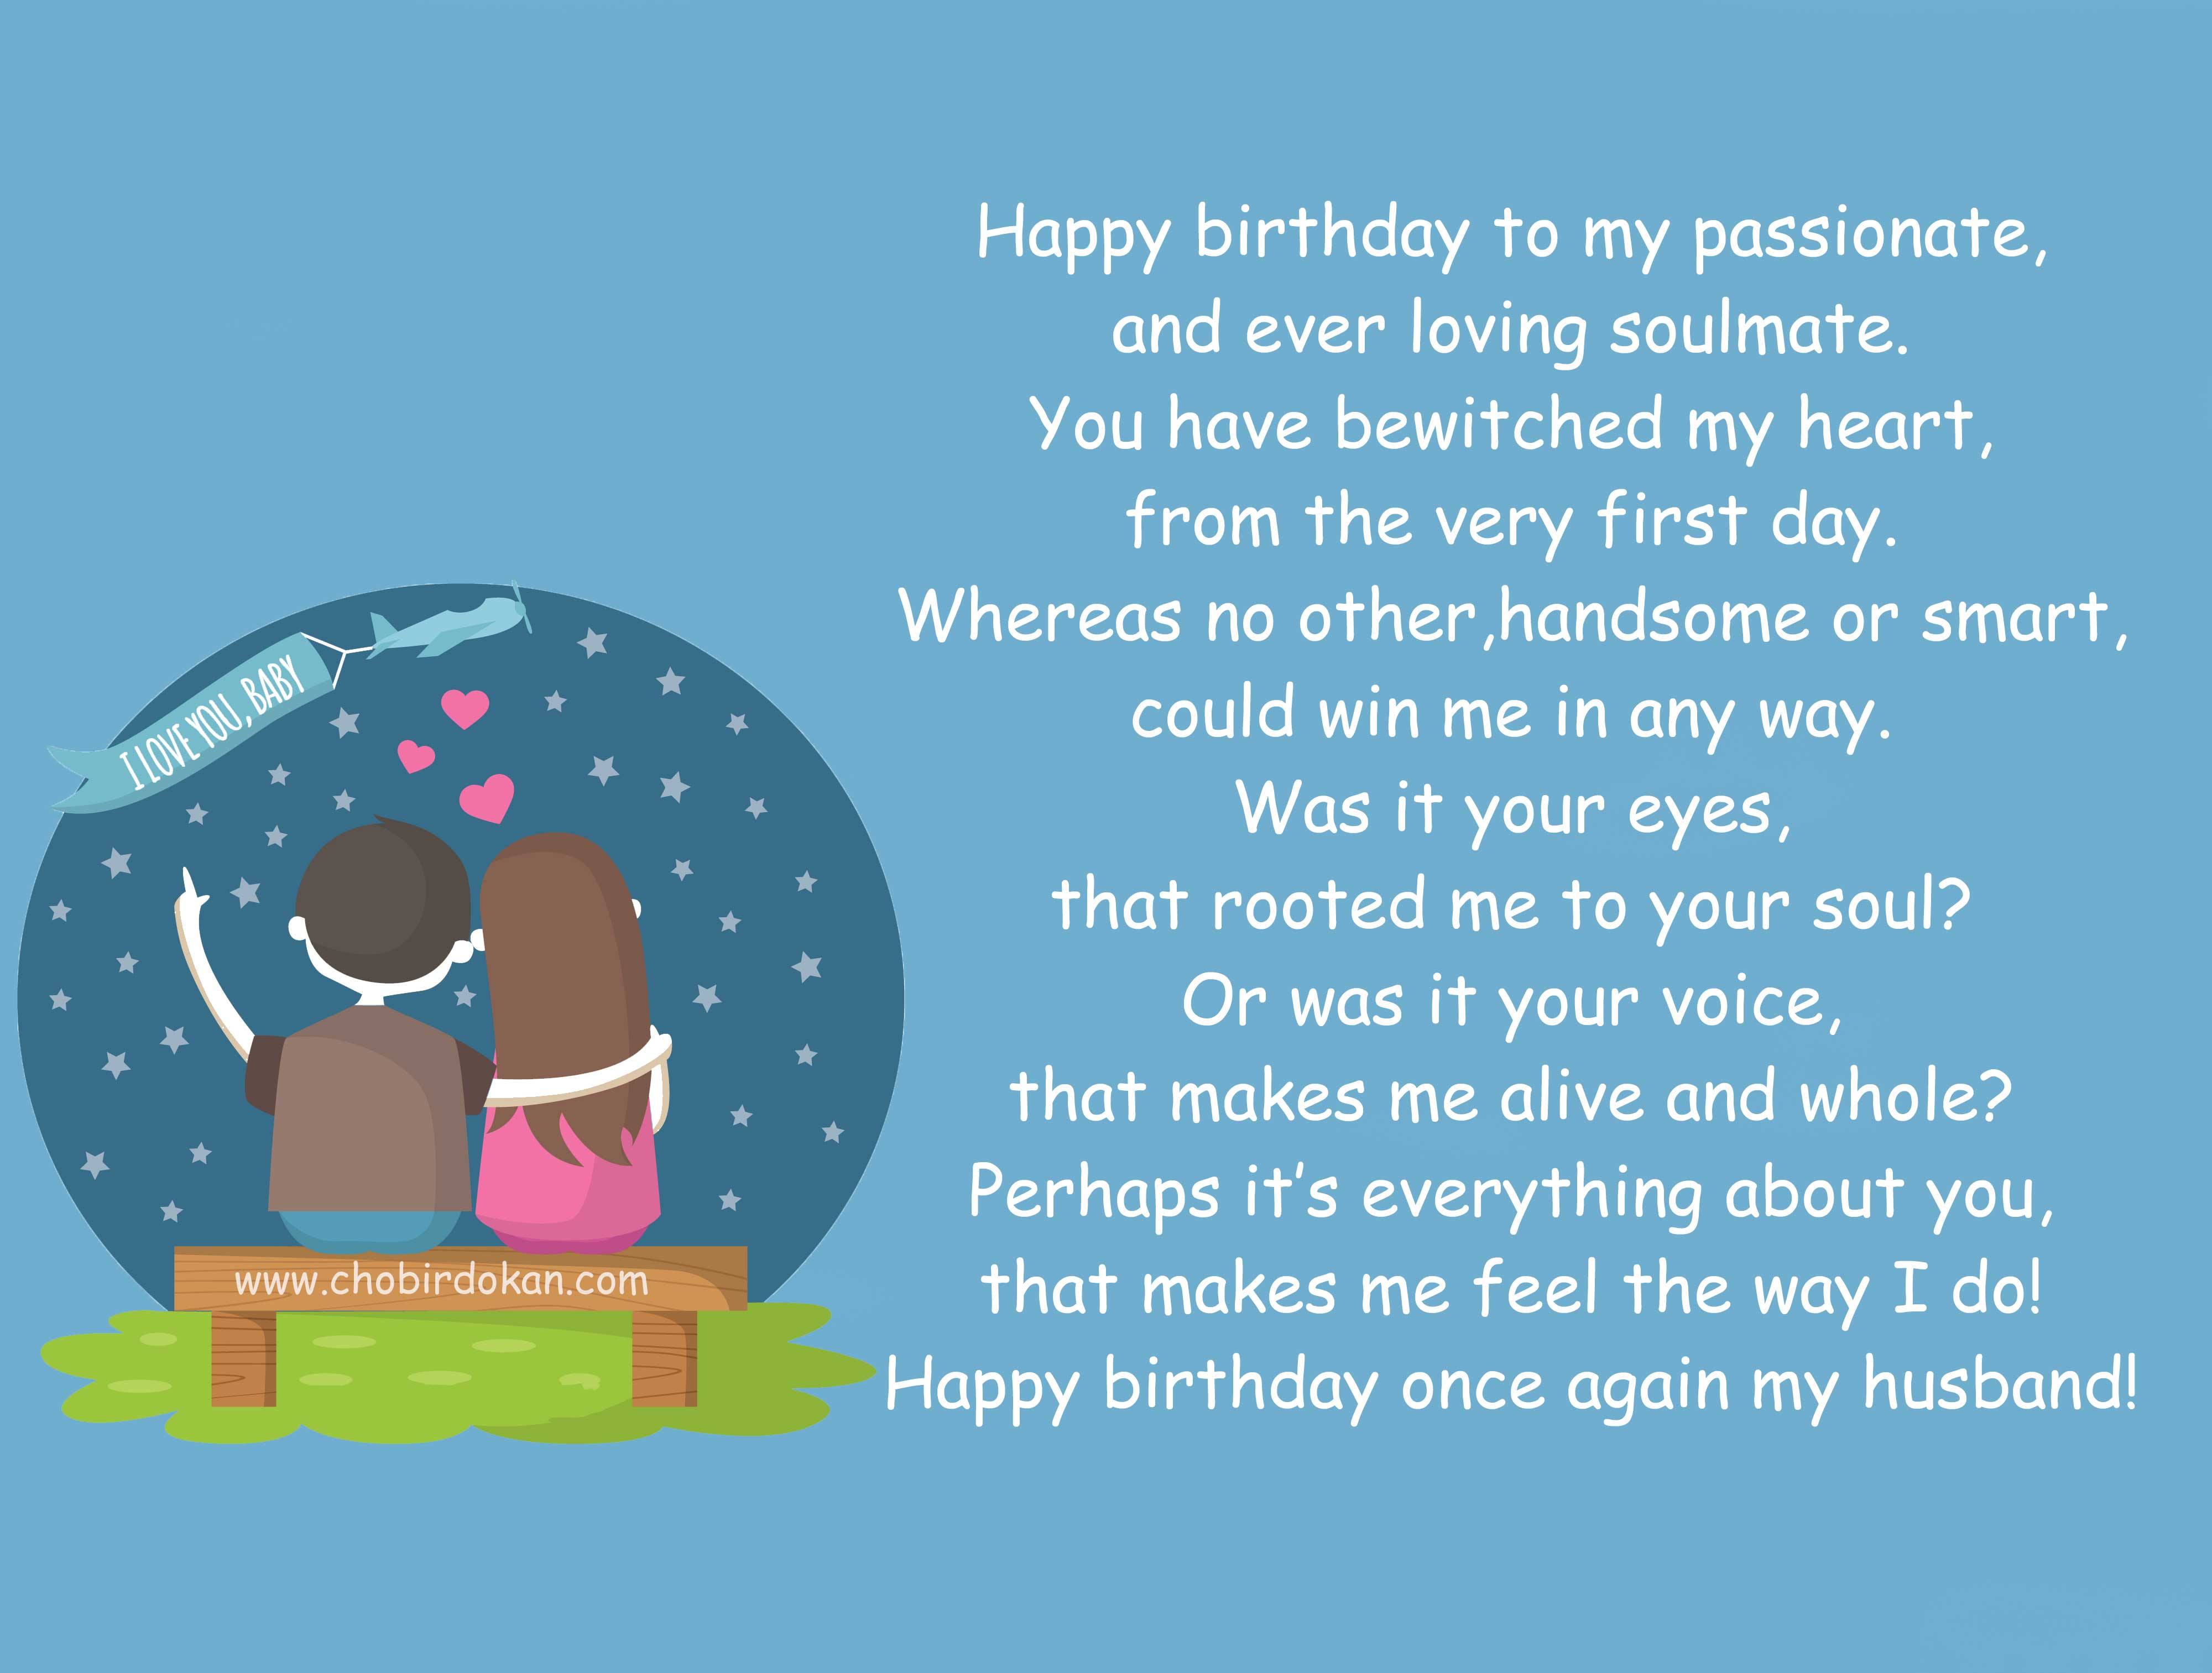 Cute happy birthday poems for boyfriend